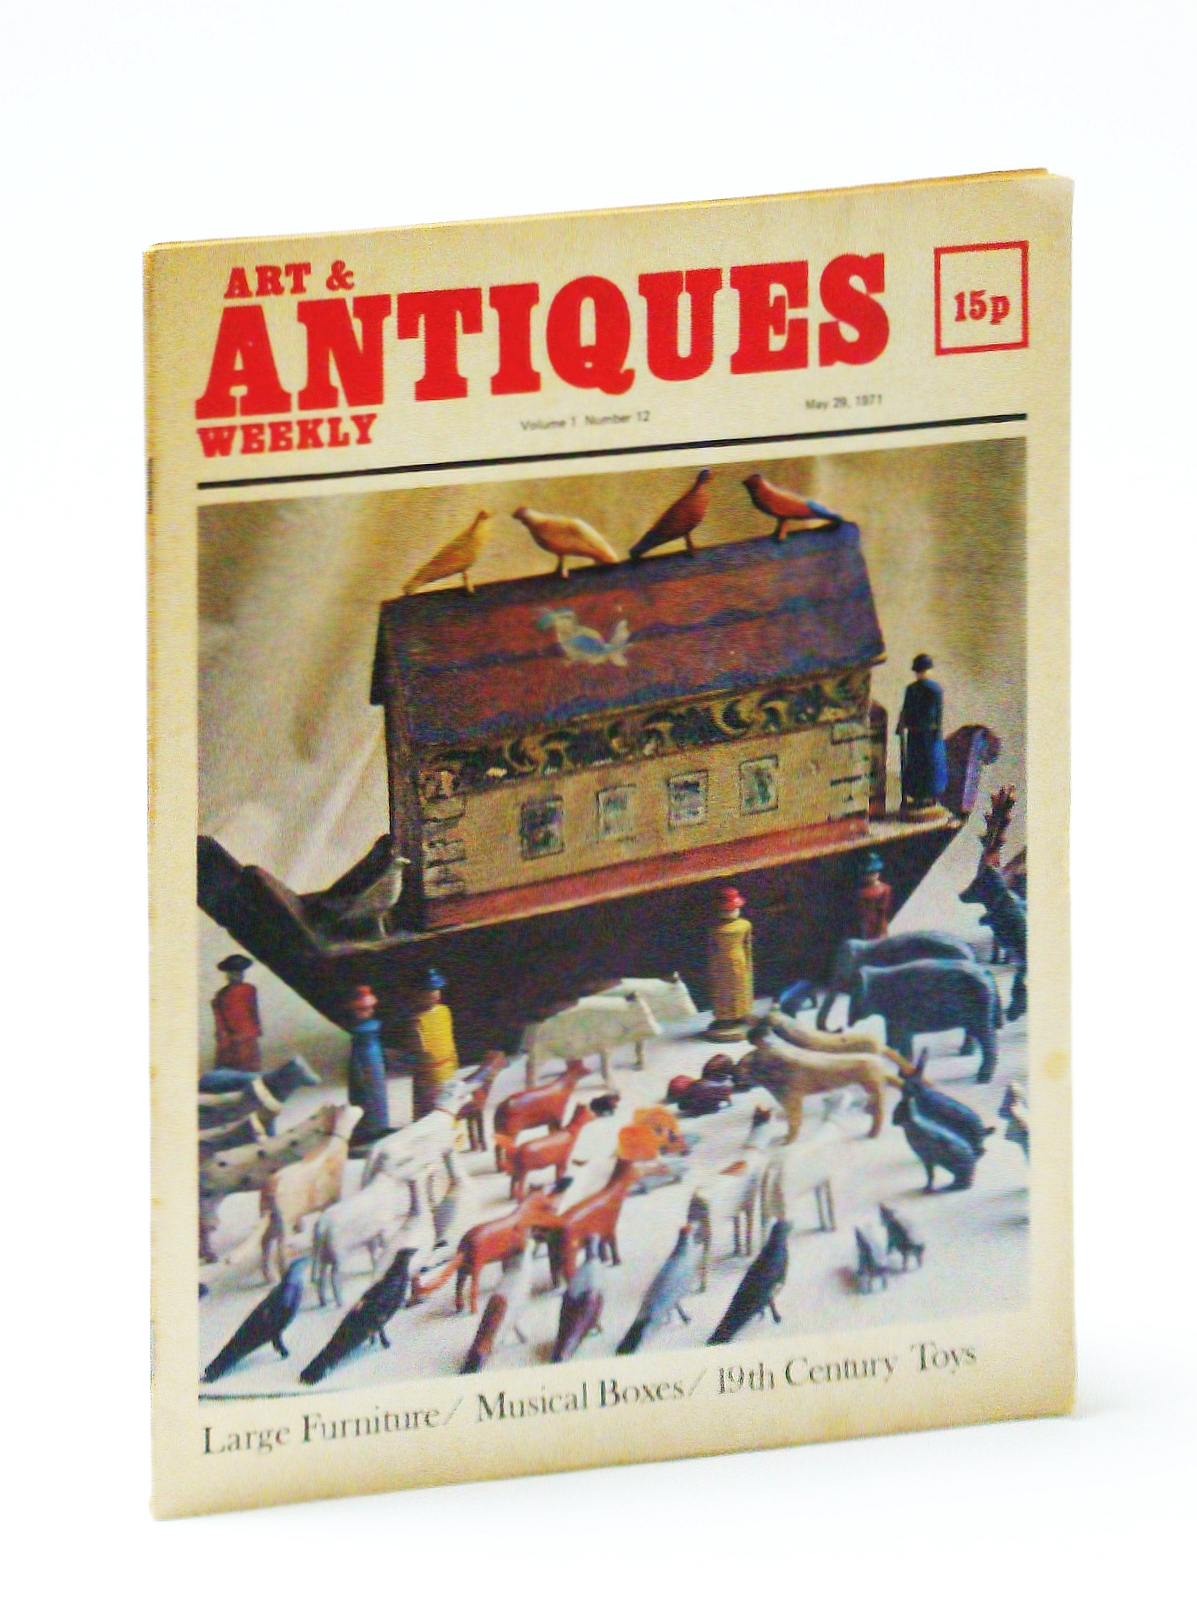 Image for Art & (and) Antiques Weekly, May 29, 1971: Musical Boxes / 19th Century Toys